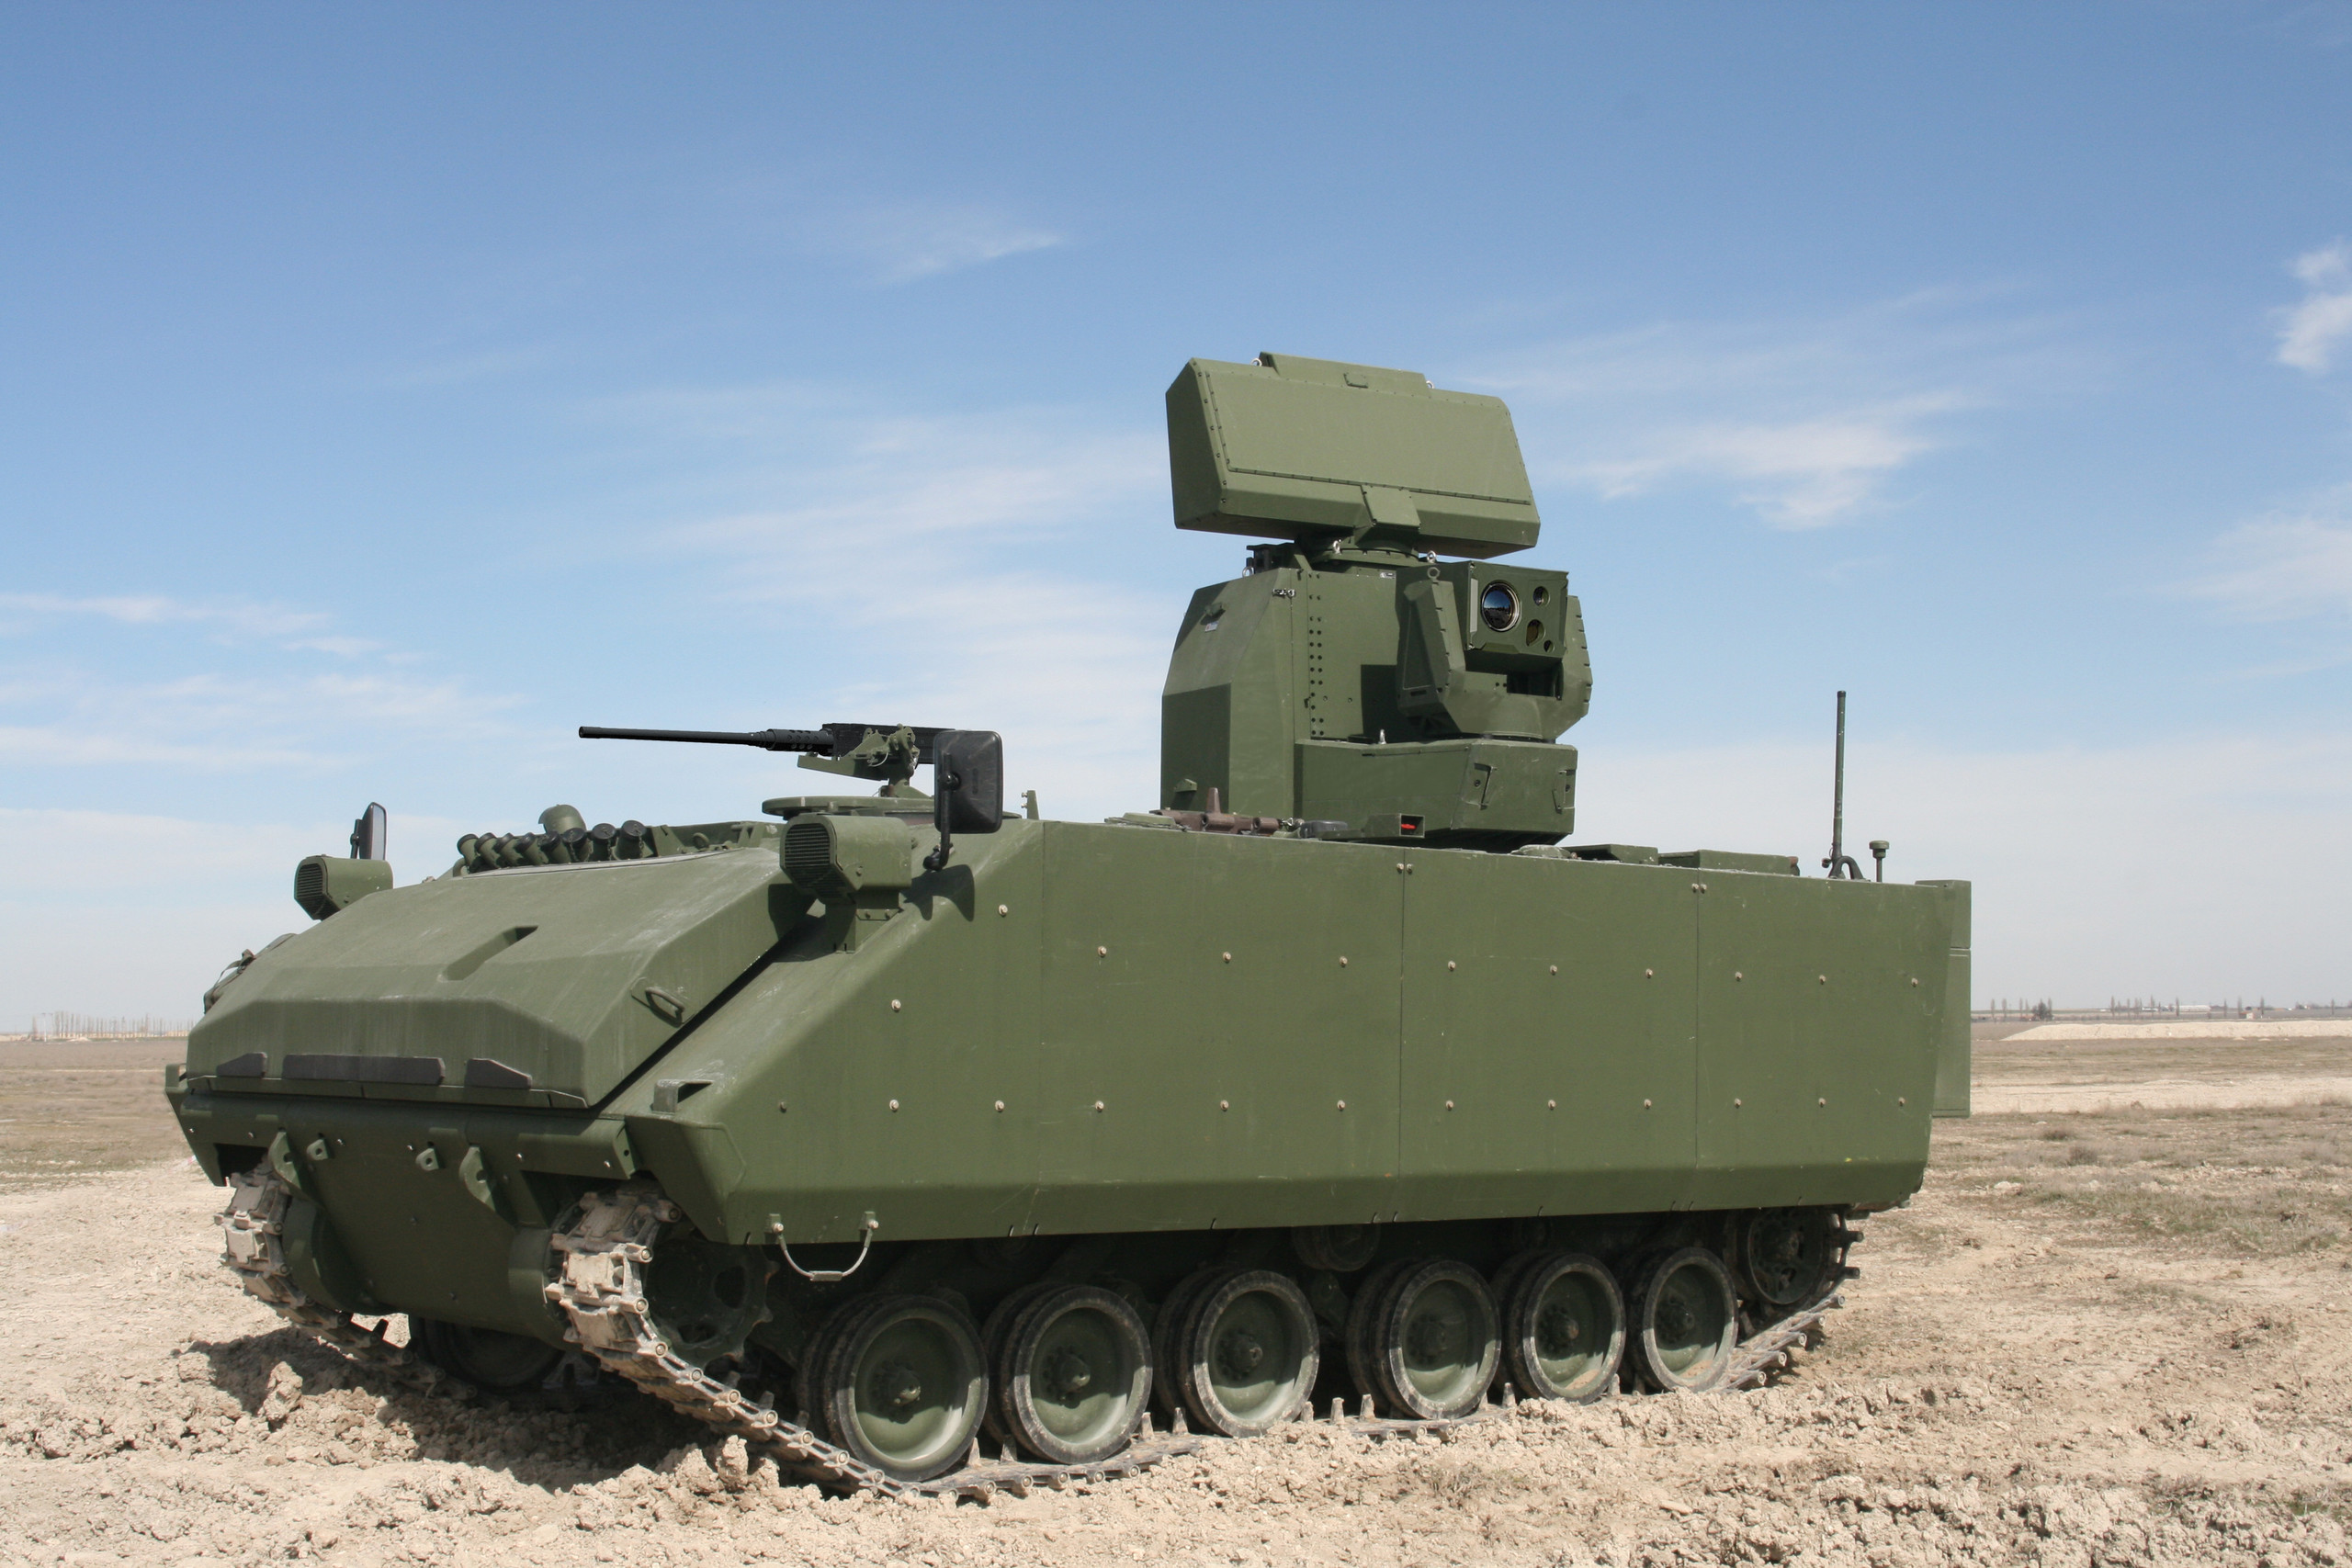 Turkish Ground Forces AFVs and Tanks E3PG8z